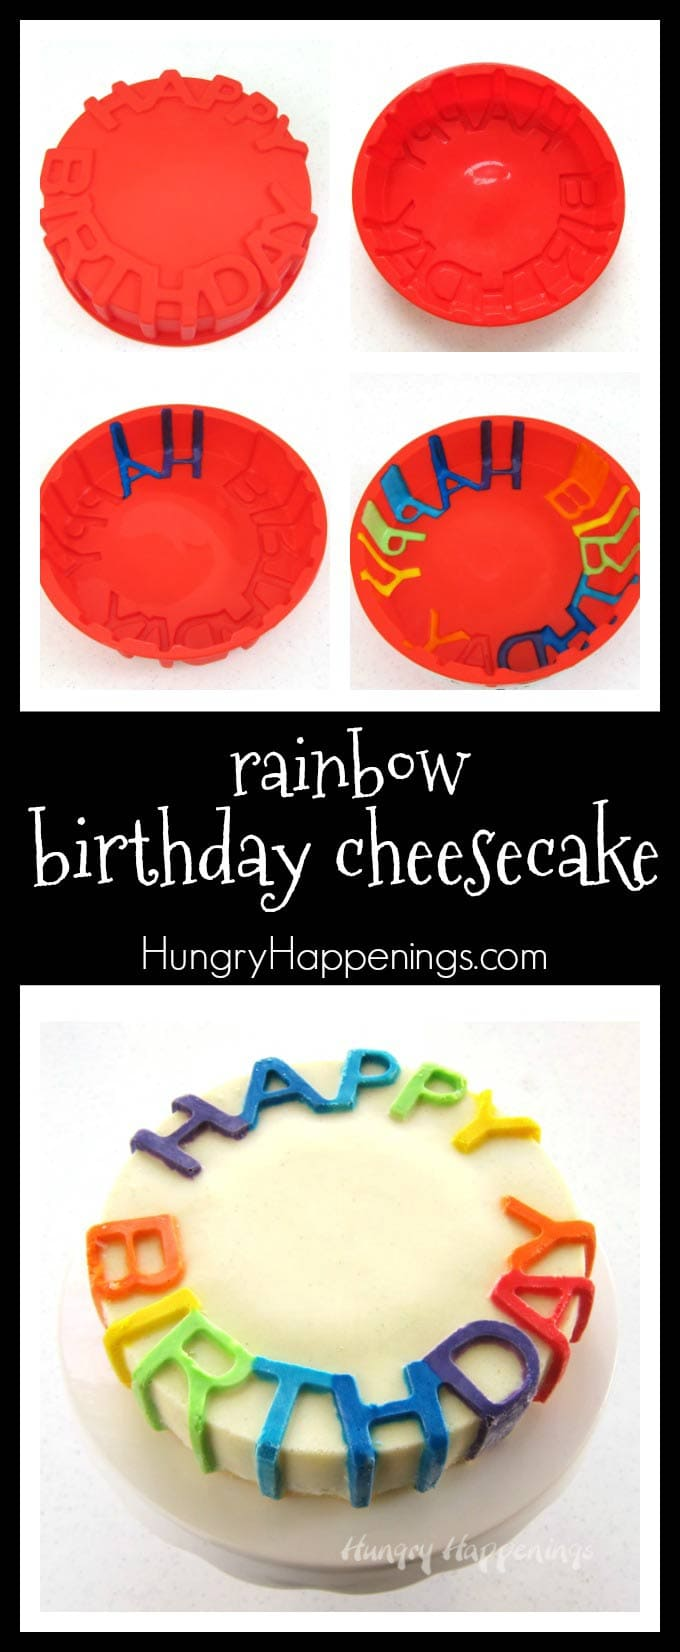 Celebrate another wonderful year of life with a colorful rainbow Birthday Cheesecake. This naturally gluten free dessert tastes so amazing that everyone at your party will be happy to indulge in a slice.